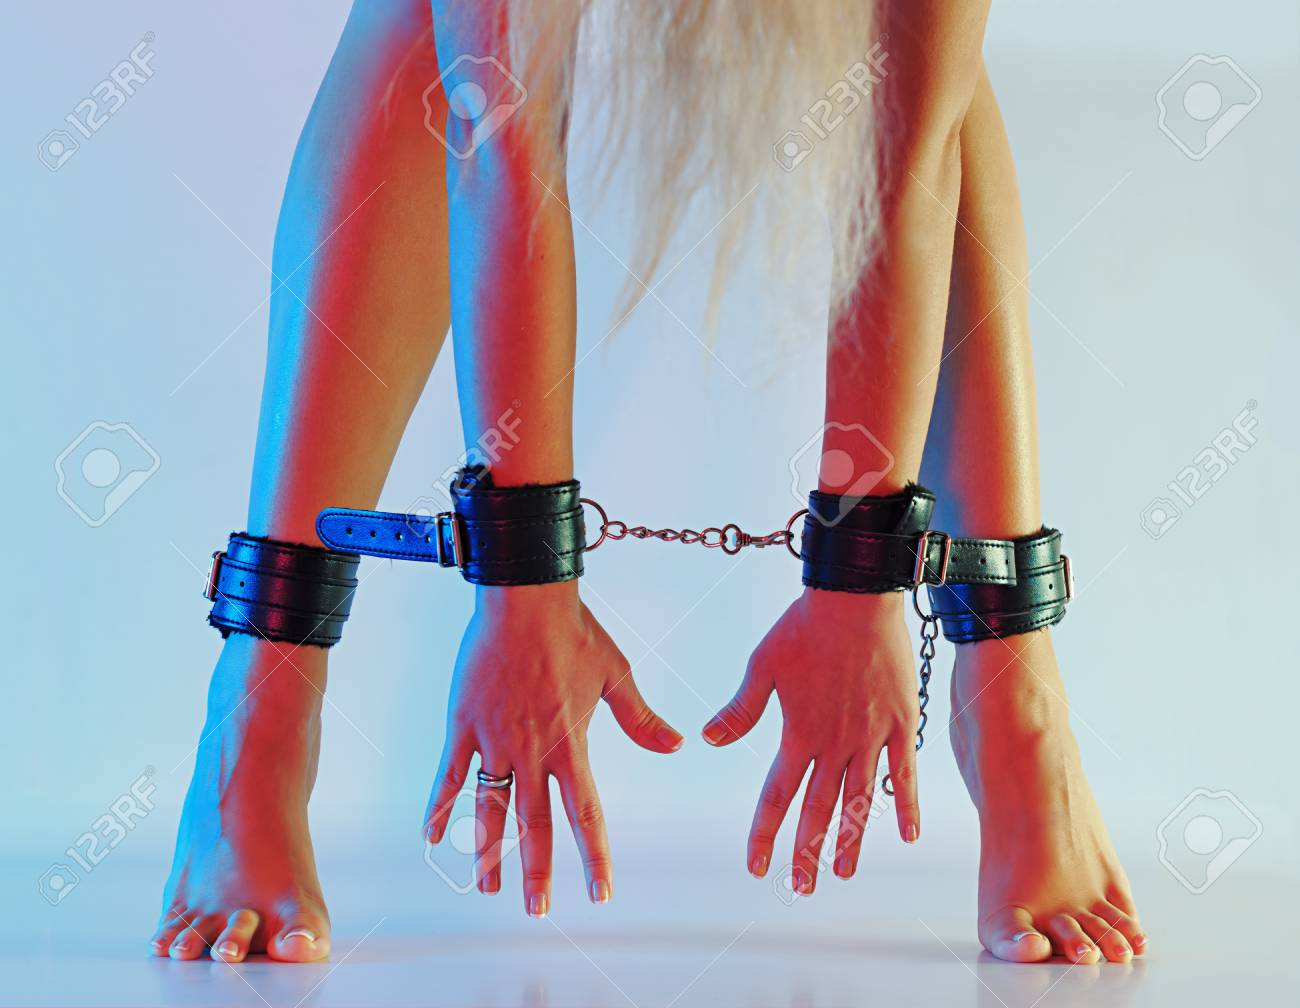 Sexy Long Female Legs Barefoot On Tip Toes In Leather Cuffs Chained Together With Hands